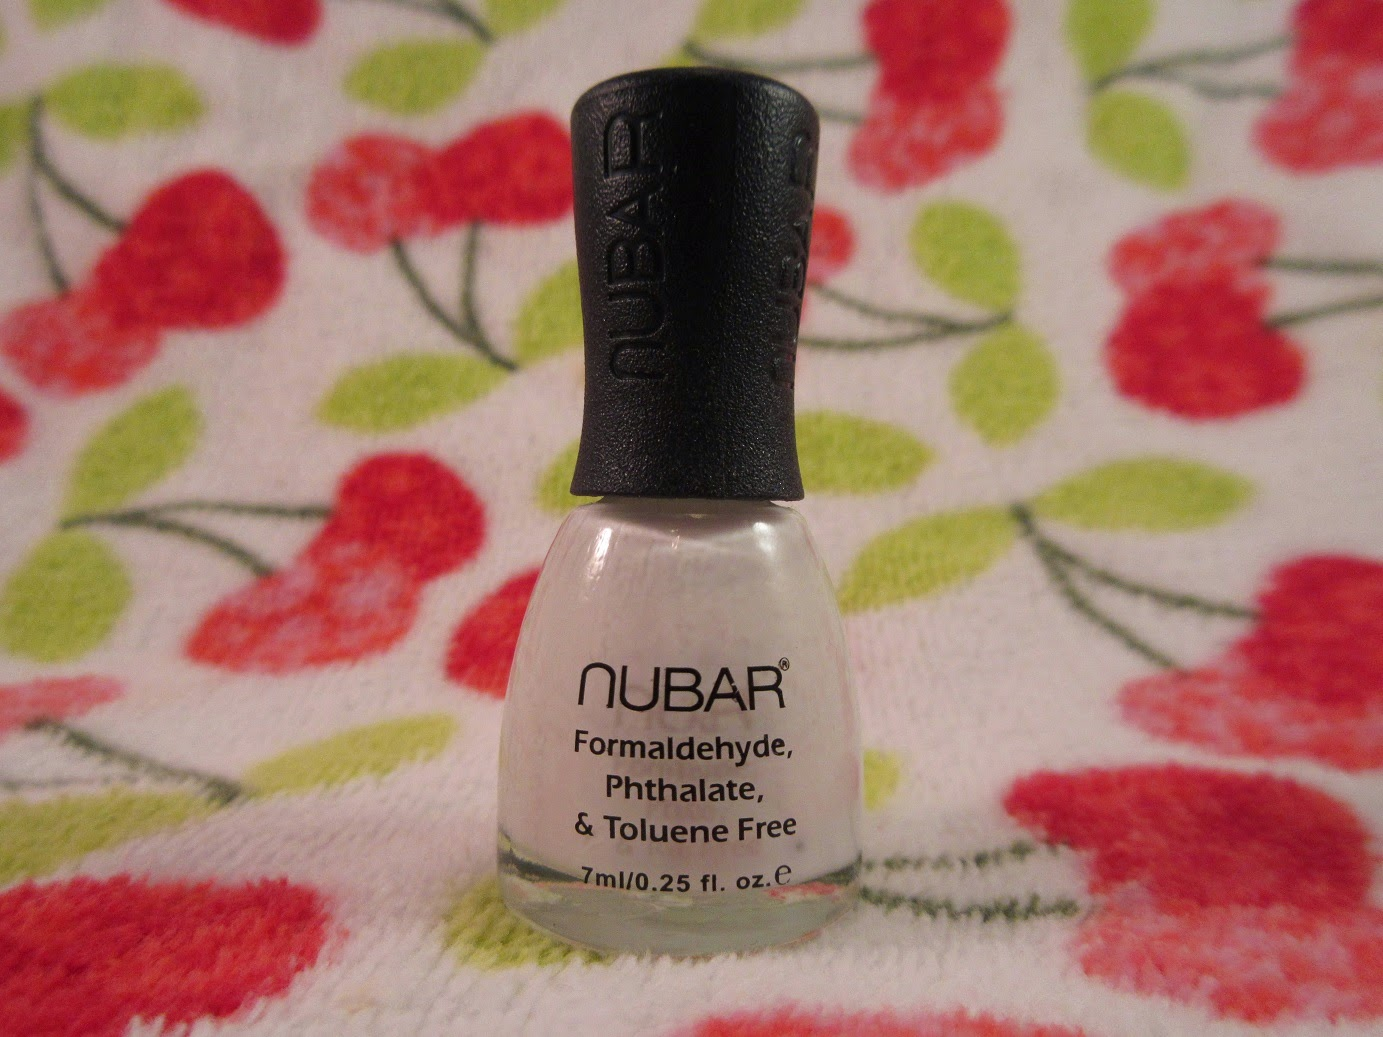 Nubar French White Tip Nail Lacquer Review+Swatches - Neon Chipmunk